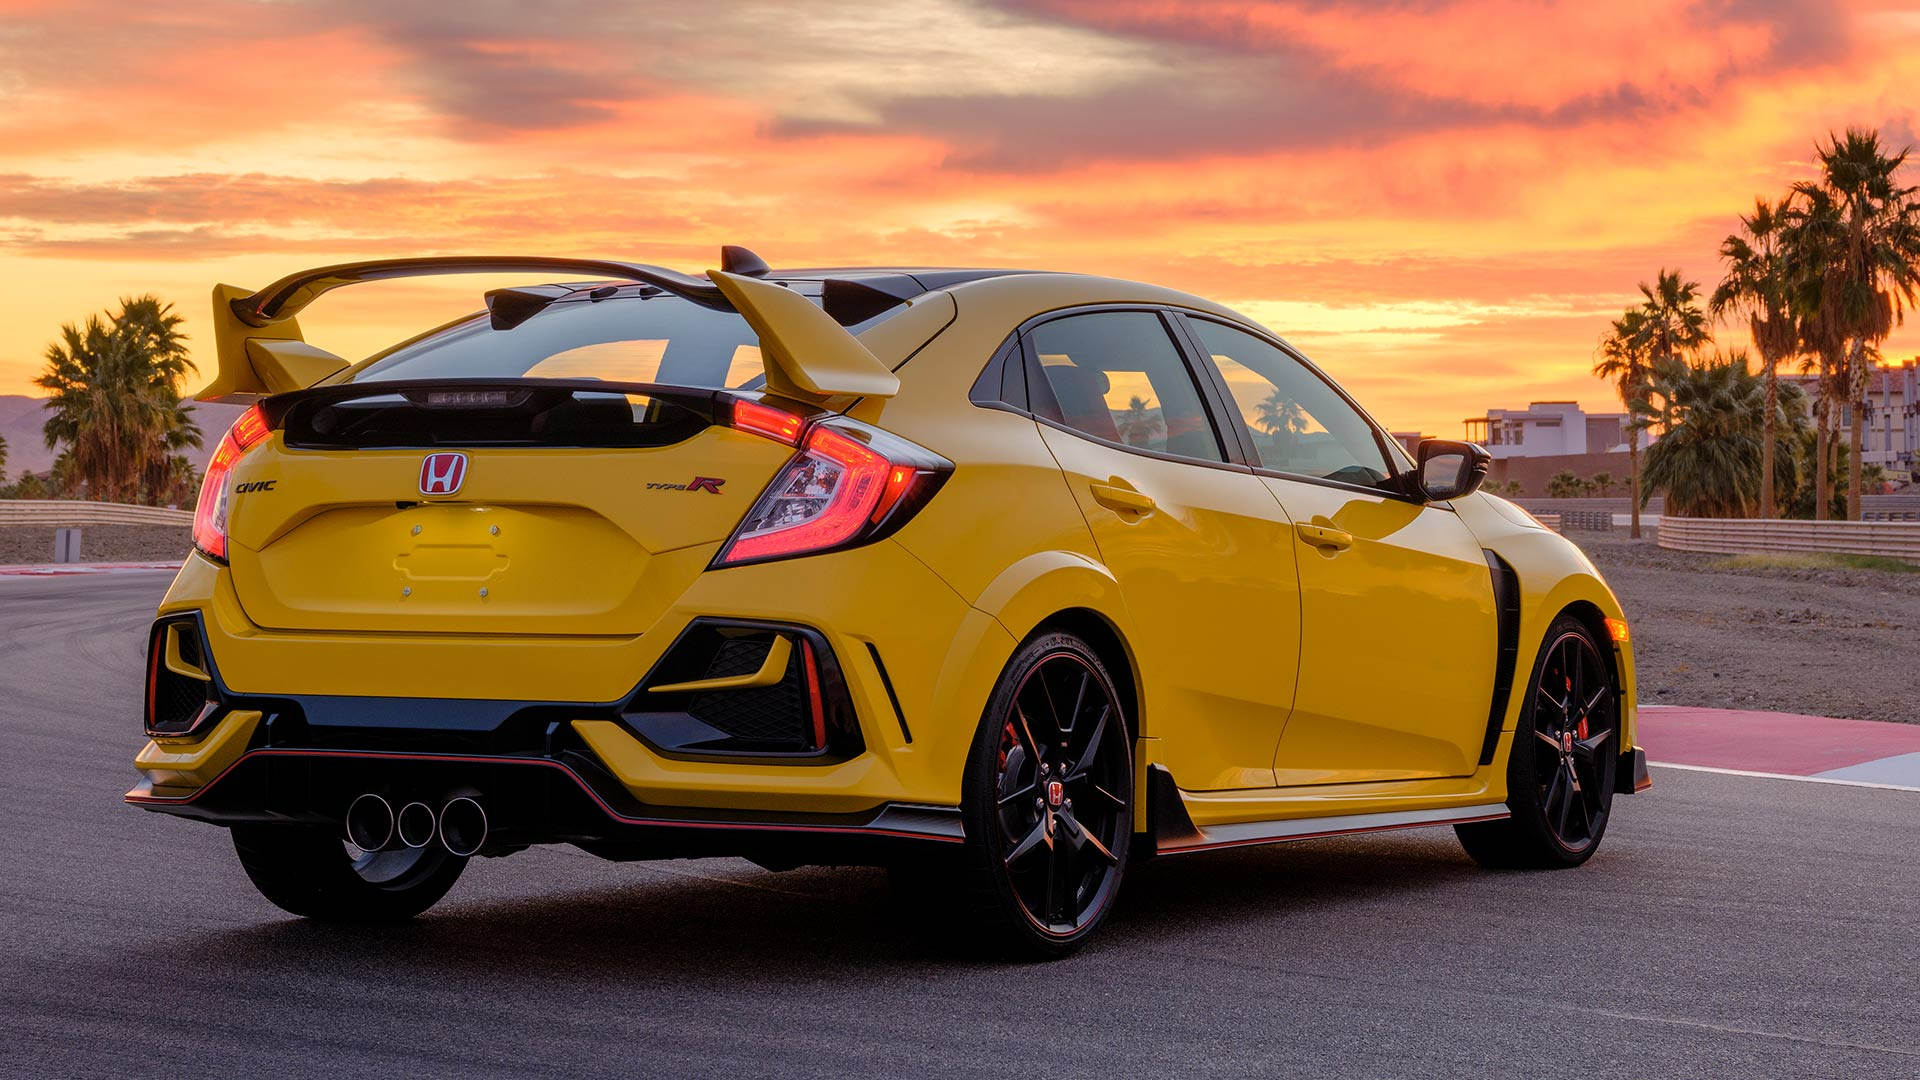 Honda Civic Type R Limited Edition 2021 - Chiếc Civic KÍCH ...